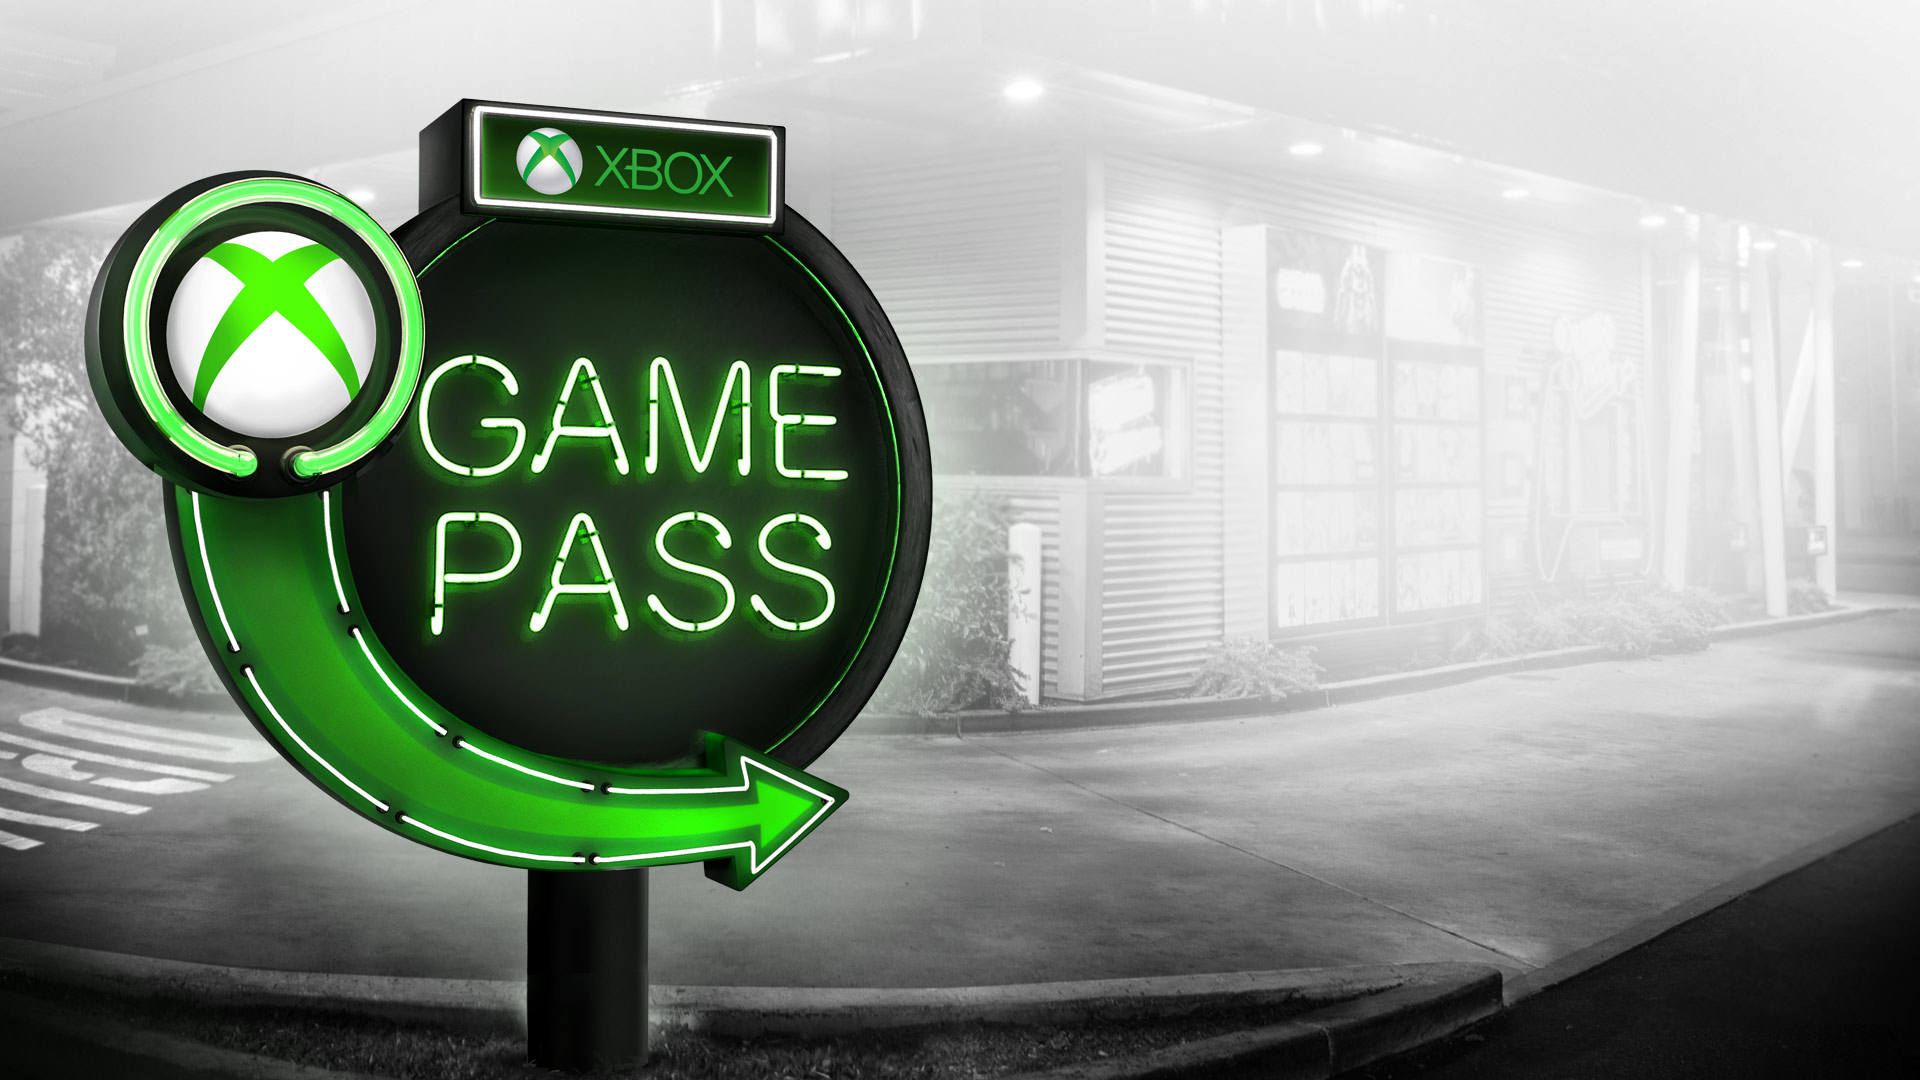 Microsoft Happy With Success Of Xbox Game Pass So Far